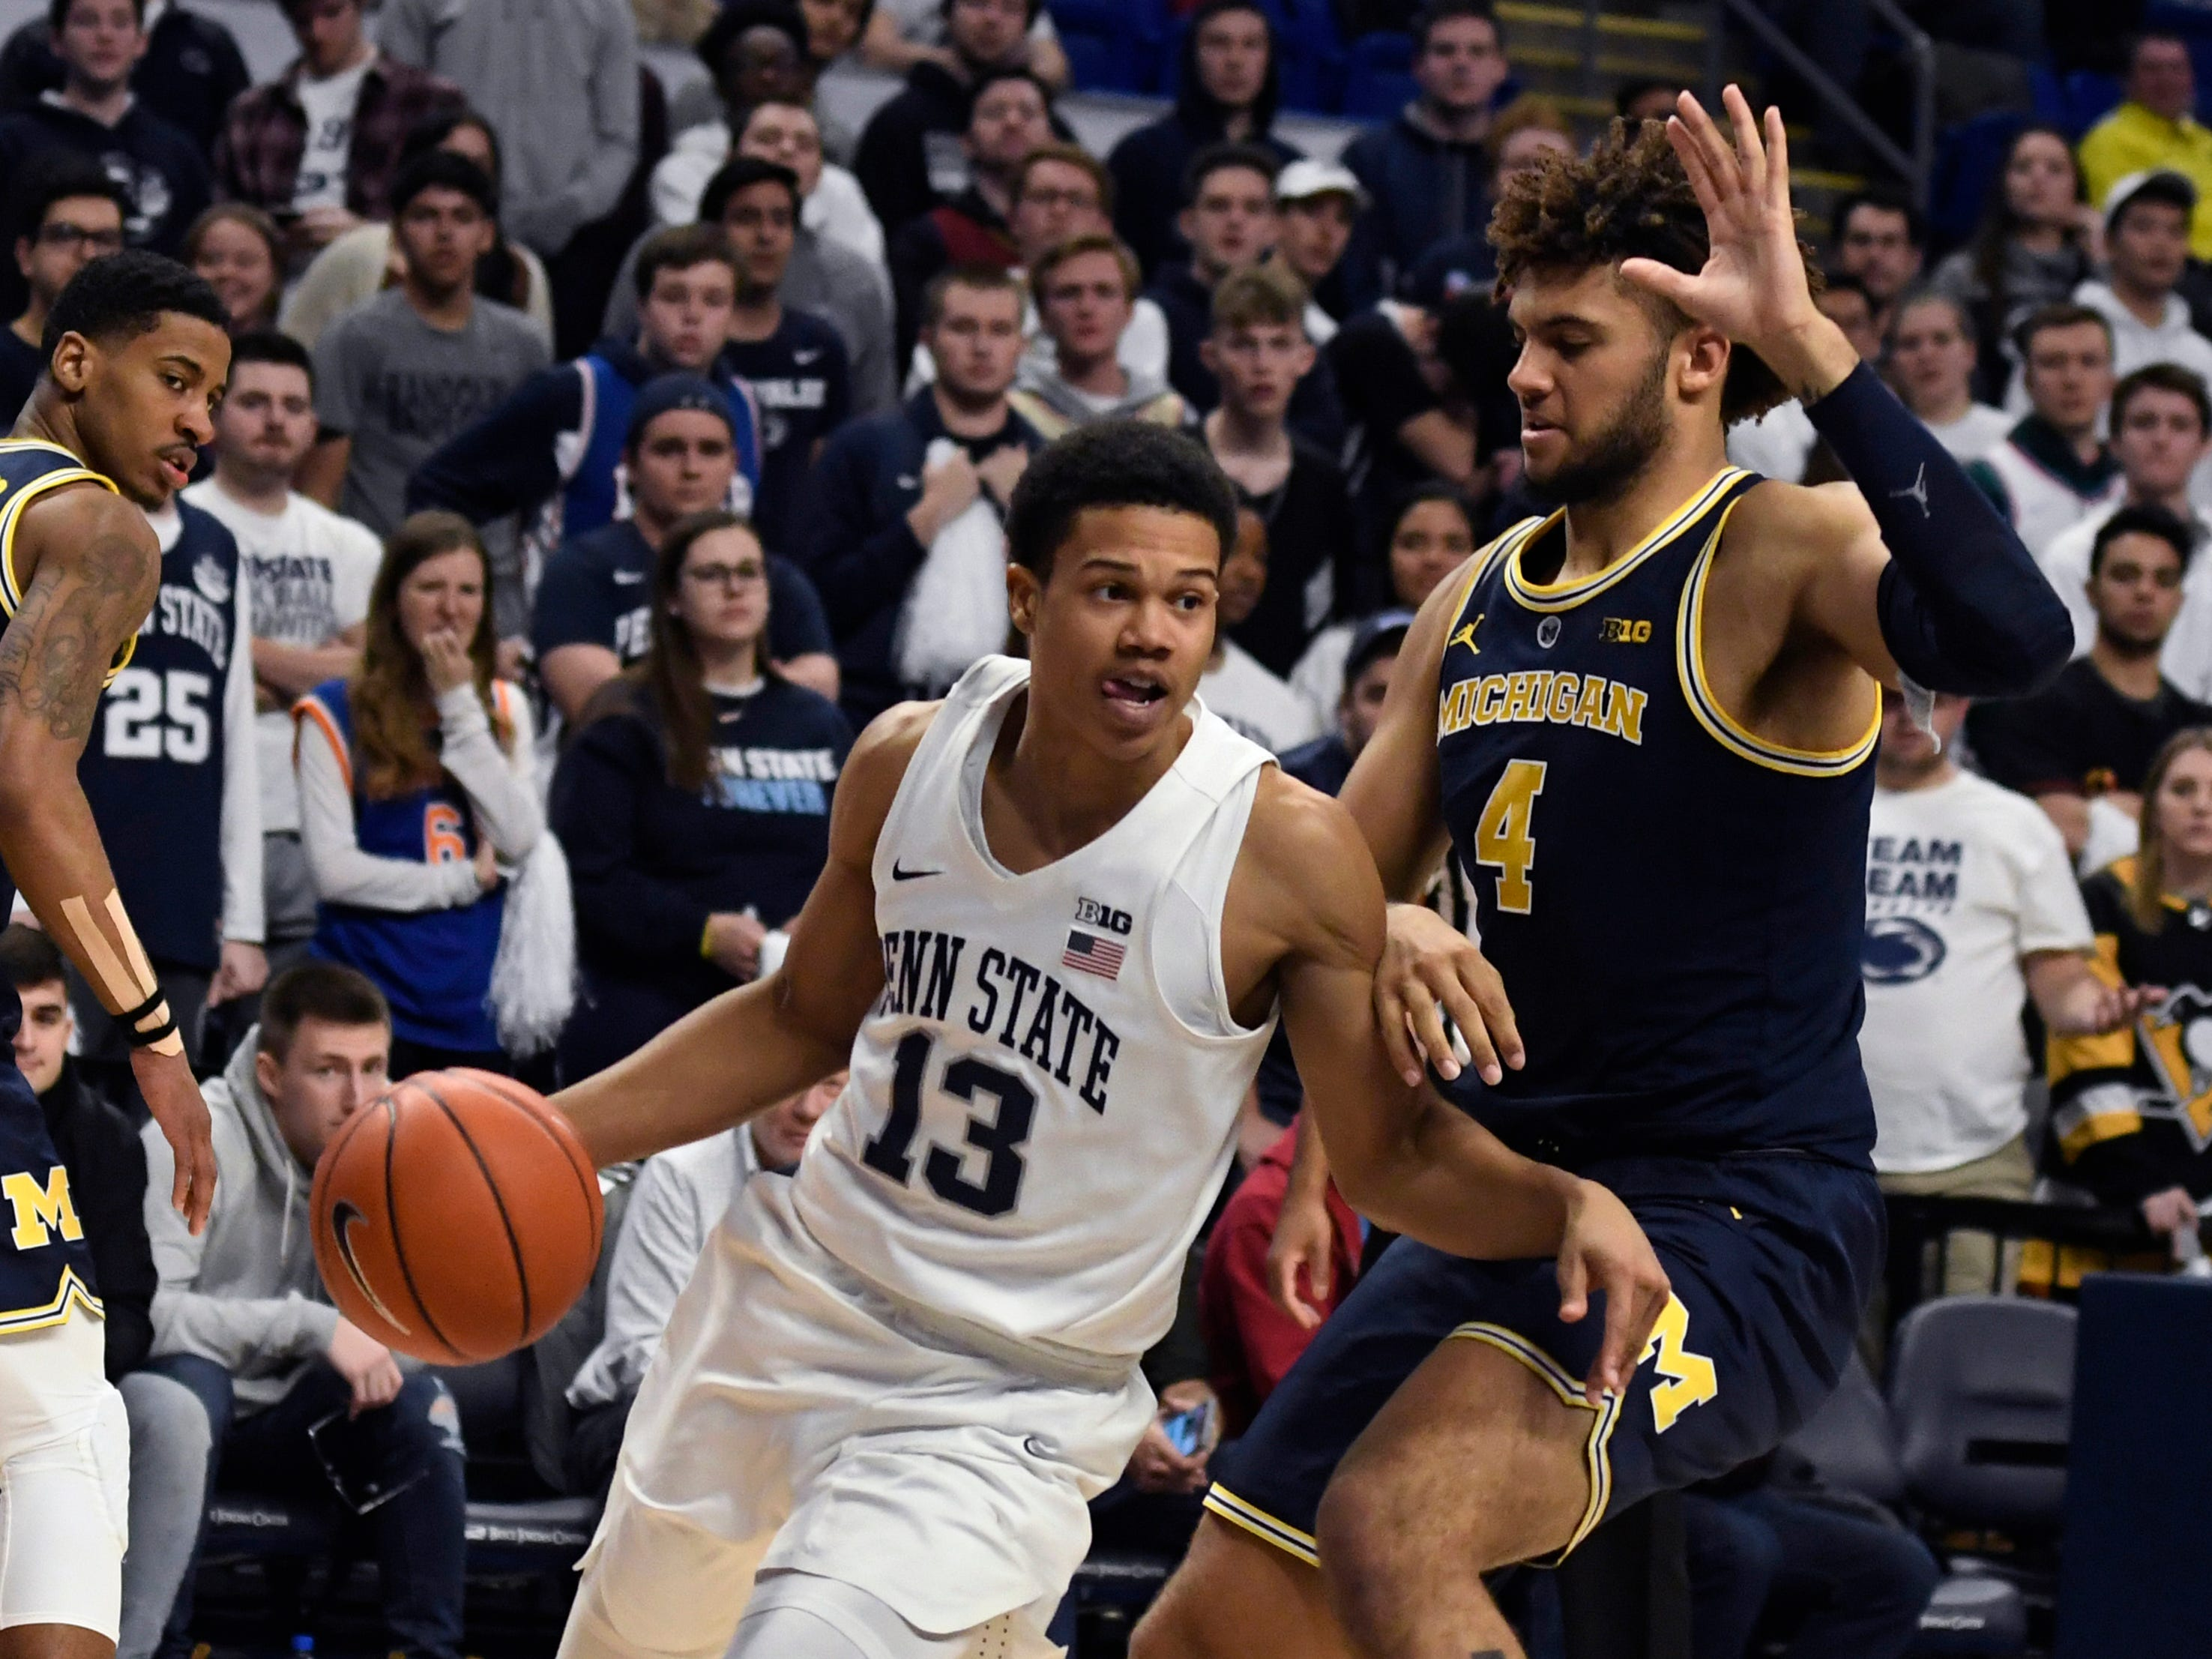 Penn State guard Rasir Bolton (13) dribbles past Michigan forward Isaiah Livers (4) during the second half.